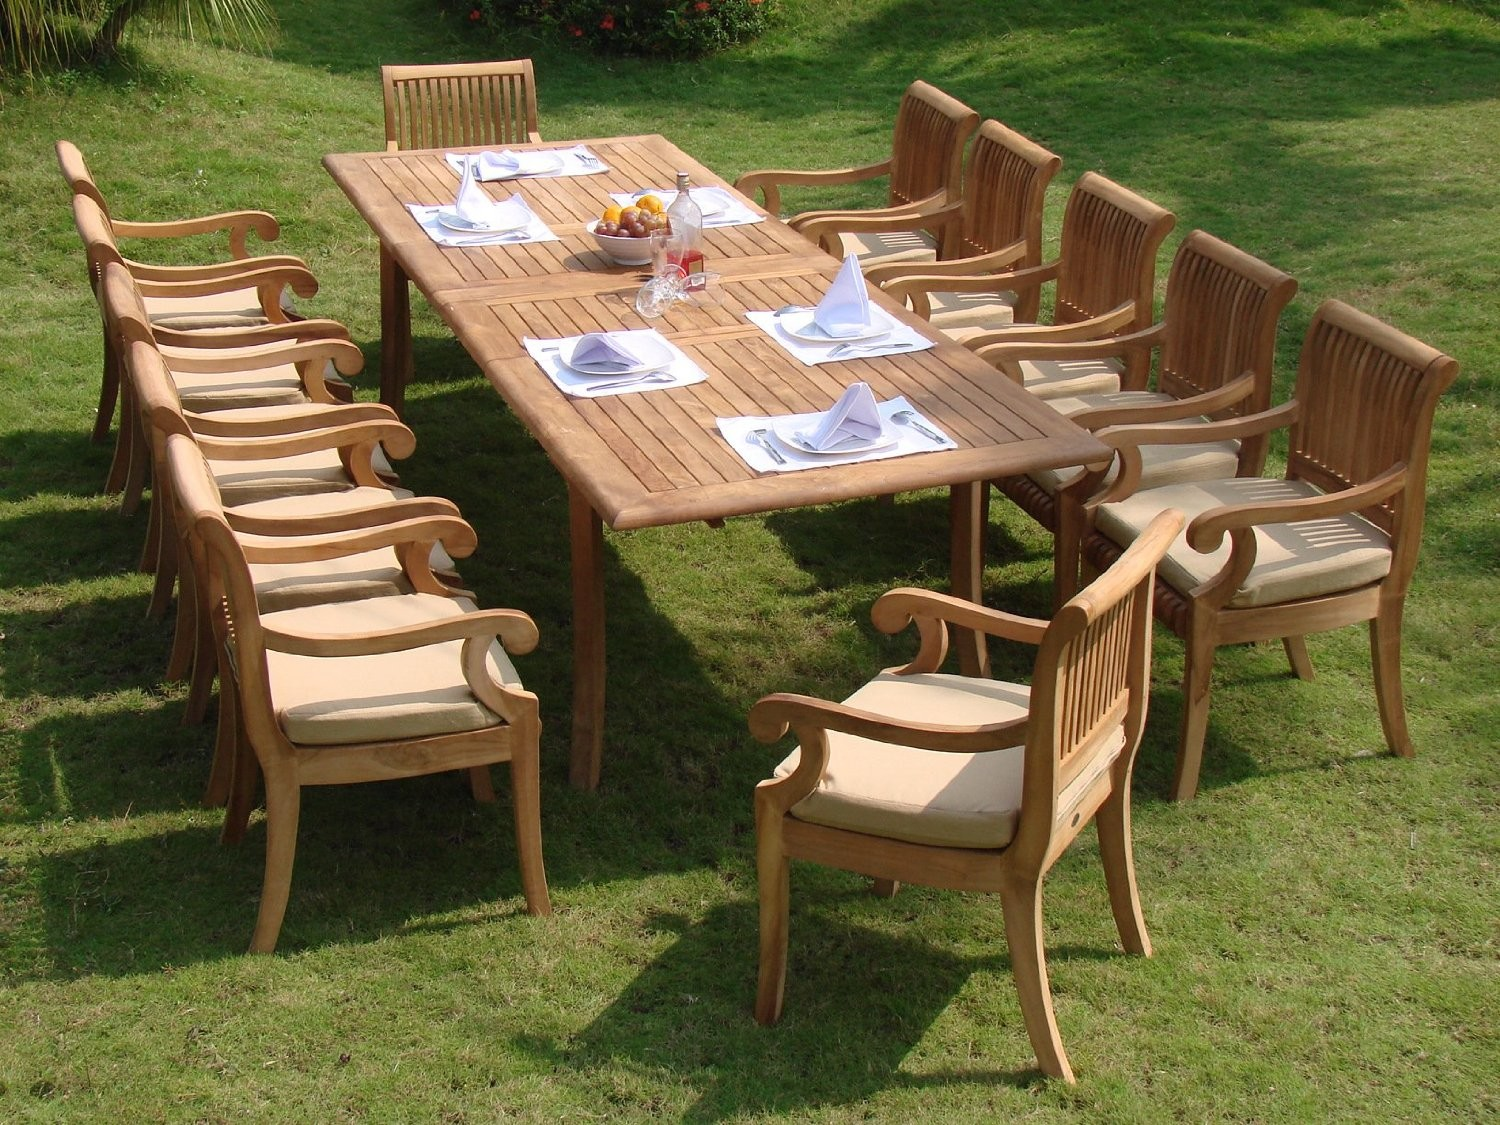 How To Protect Teak Outdoor Furniture